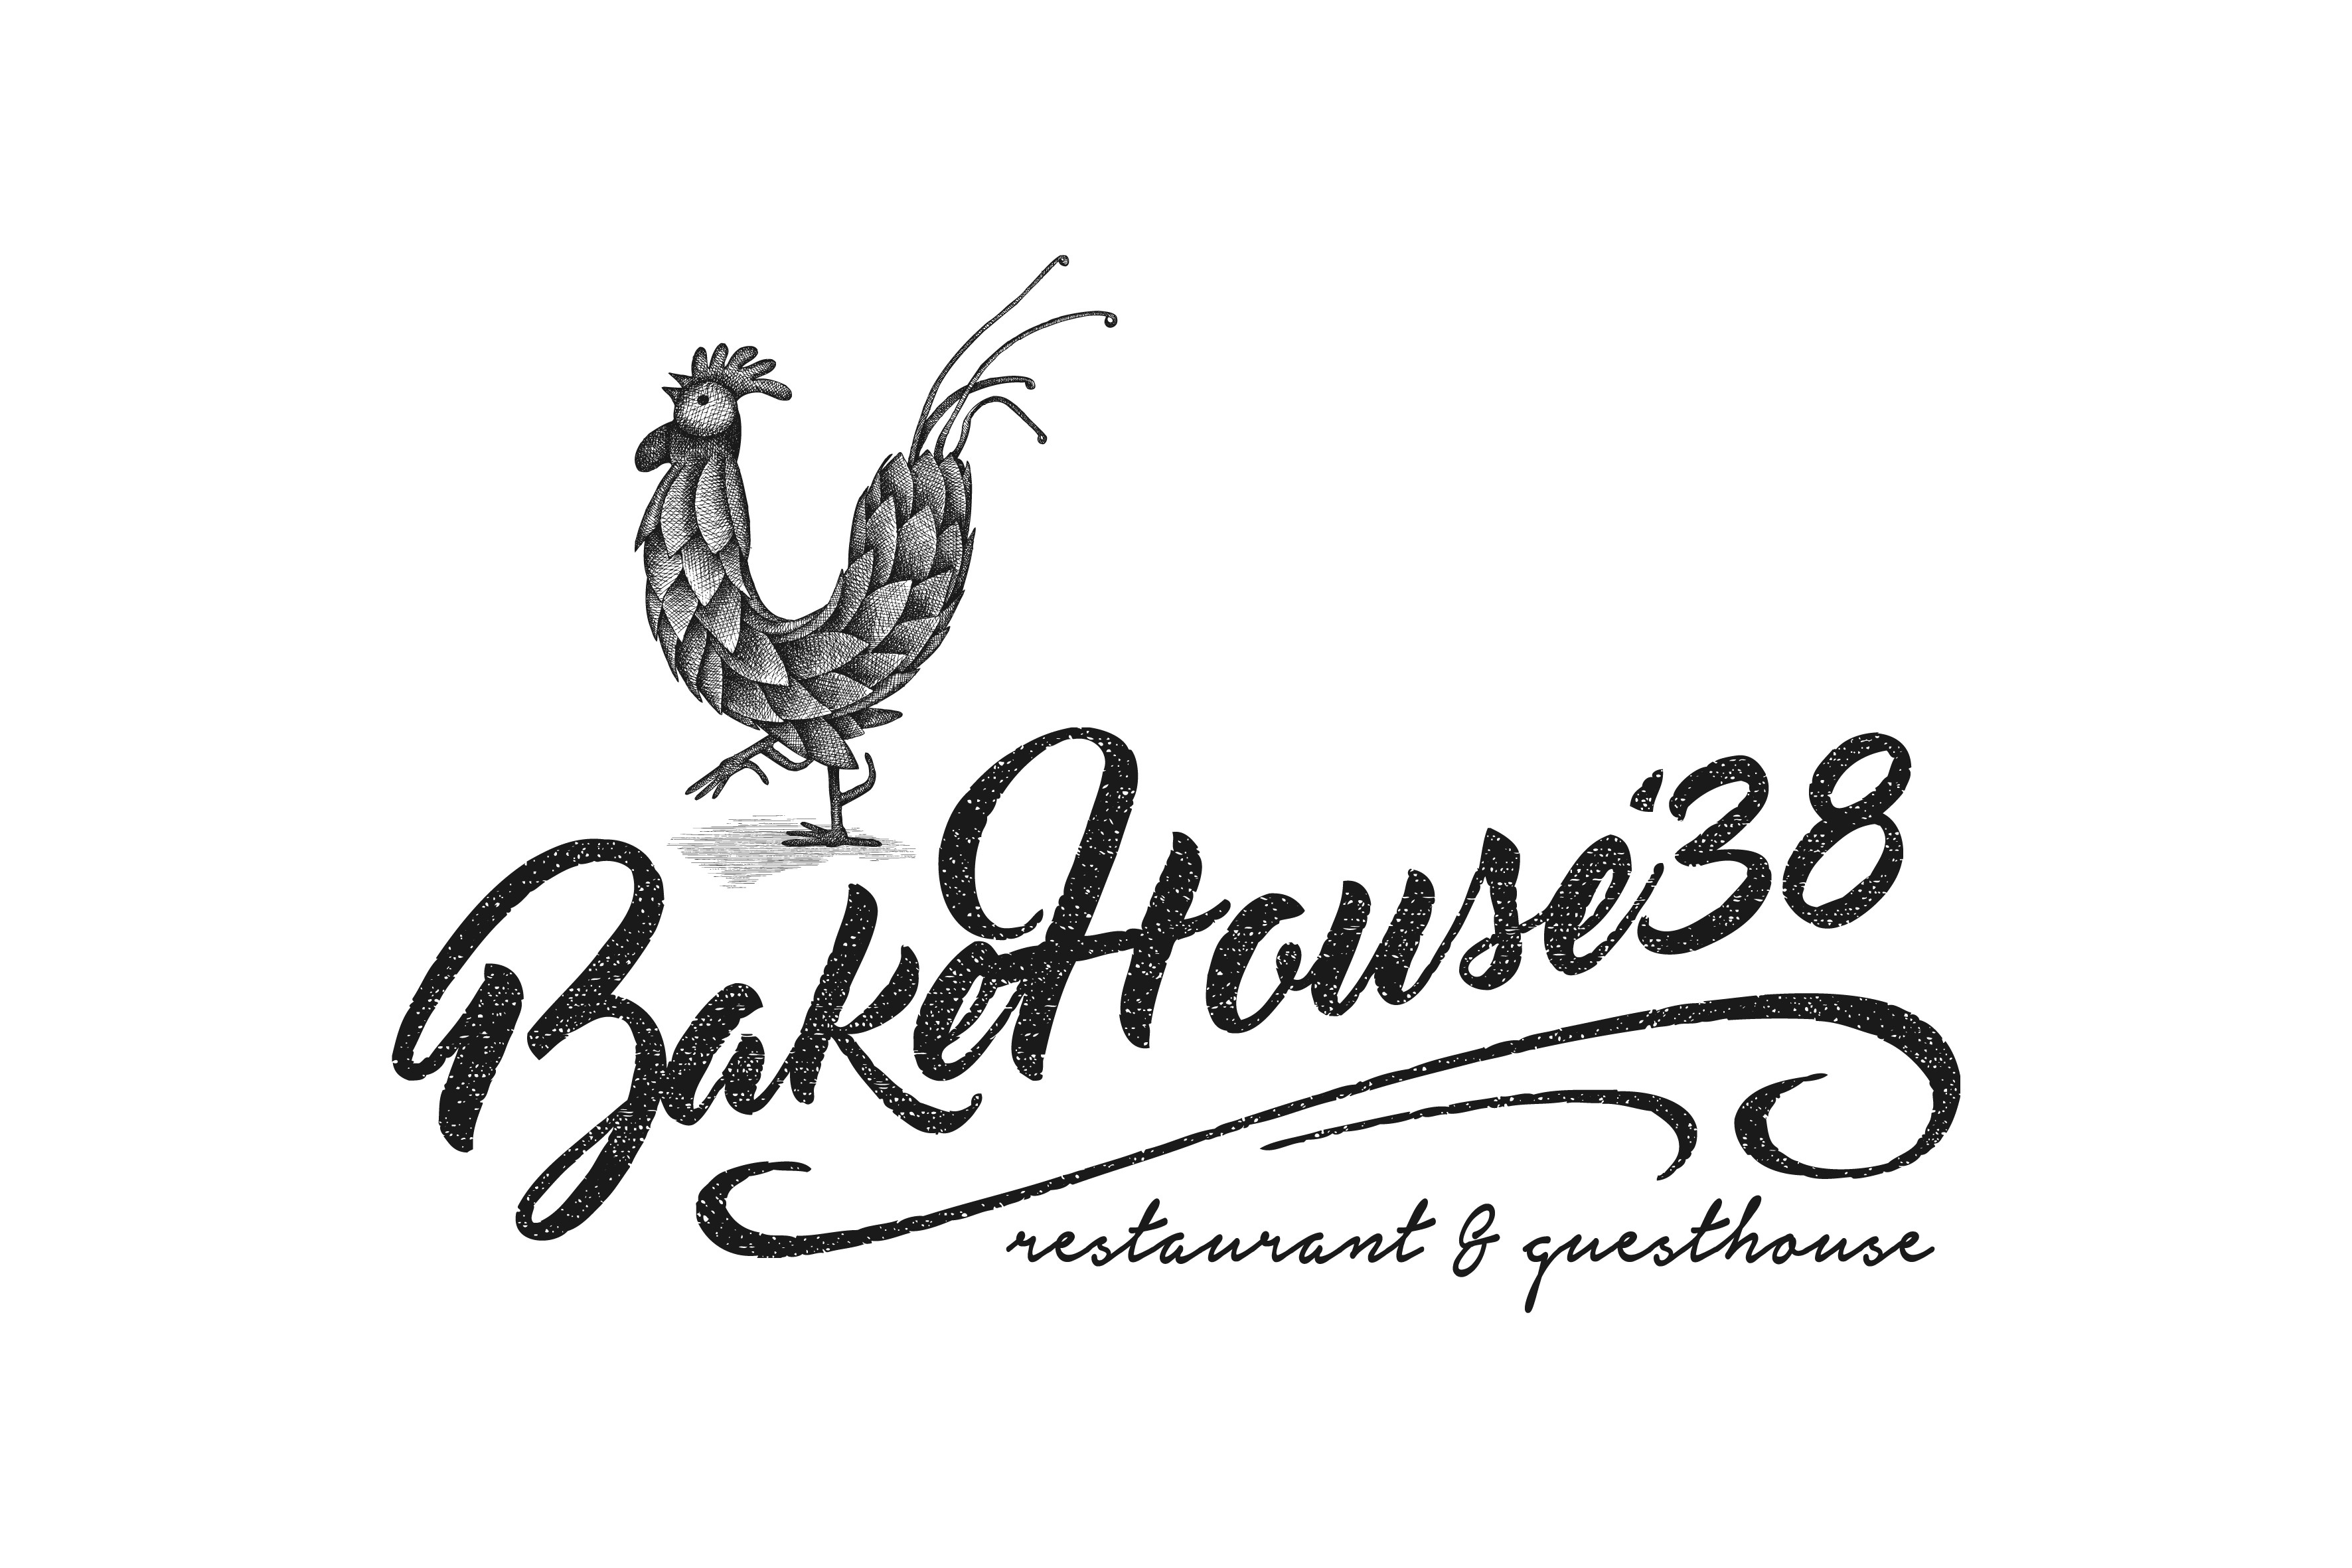 Create an inviting modern rustic logo for our woodfired bakehouse est 1938